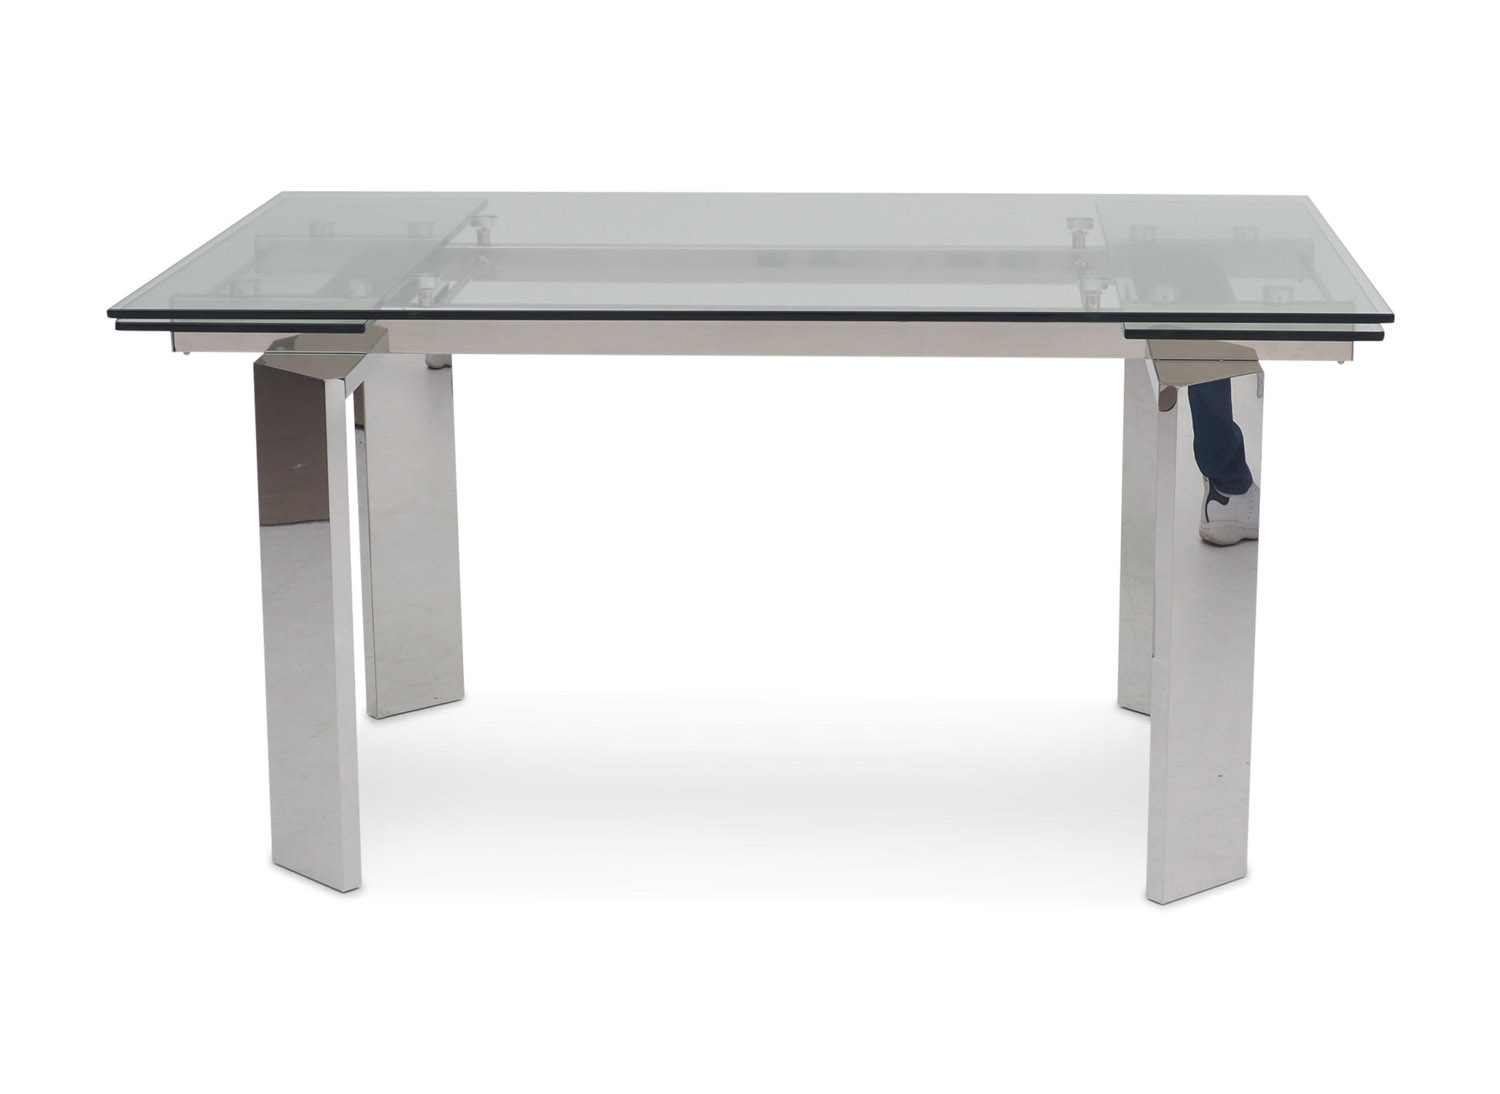 https://www.firstfurniture.co.uk/pub/media/catalog/product/n/a/natalyia_ext_table_closed_5.jpg